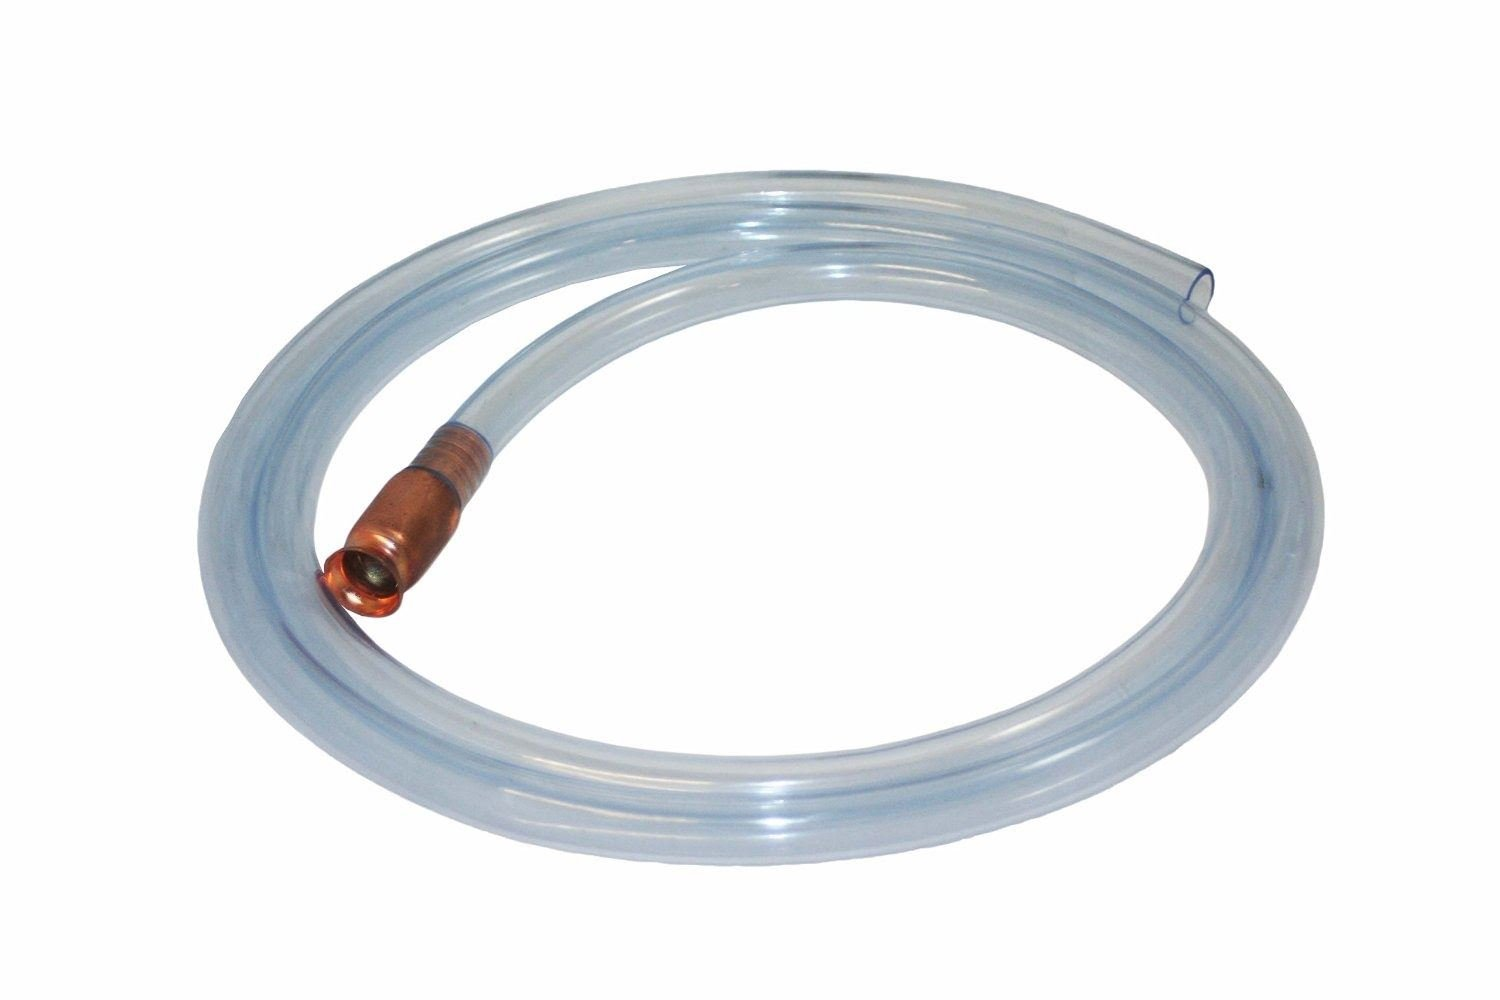 Jiggle Siphon Syphon Liquid Transfer Pump 2m Hose Fuel Solvent Water New Kangs